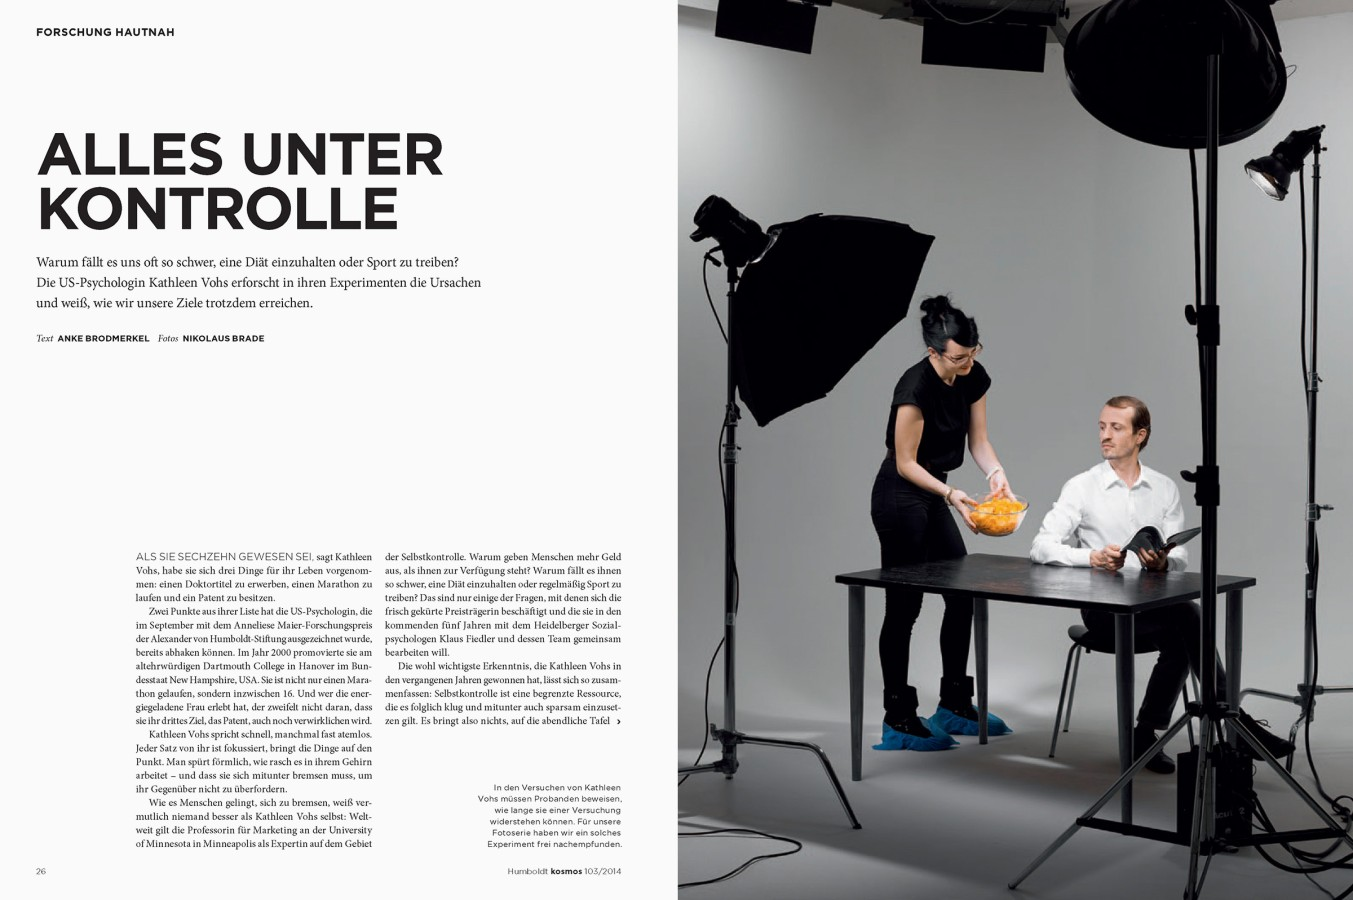 Article EVERYTHING IS UNDER CONTROL by Nikolaus Brade.